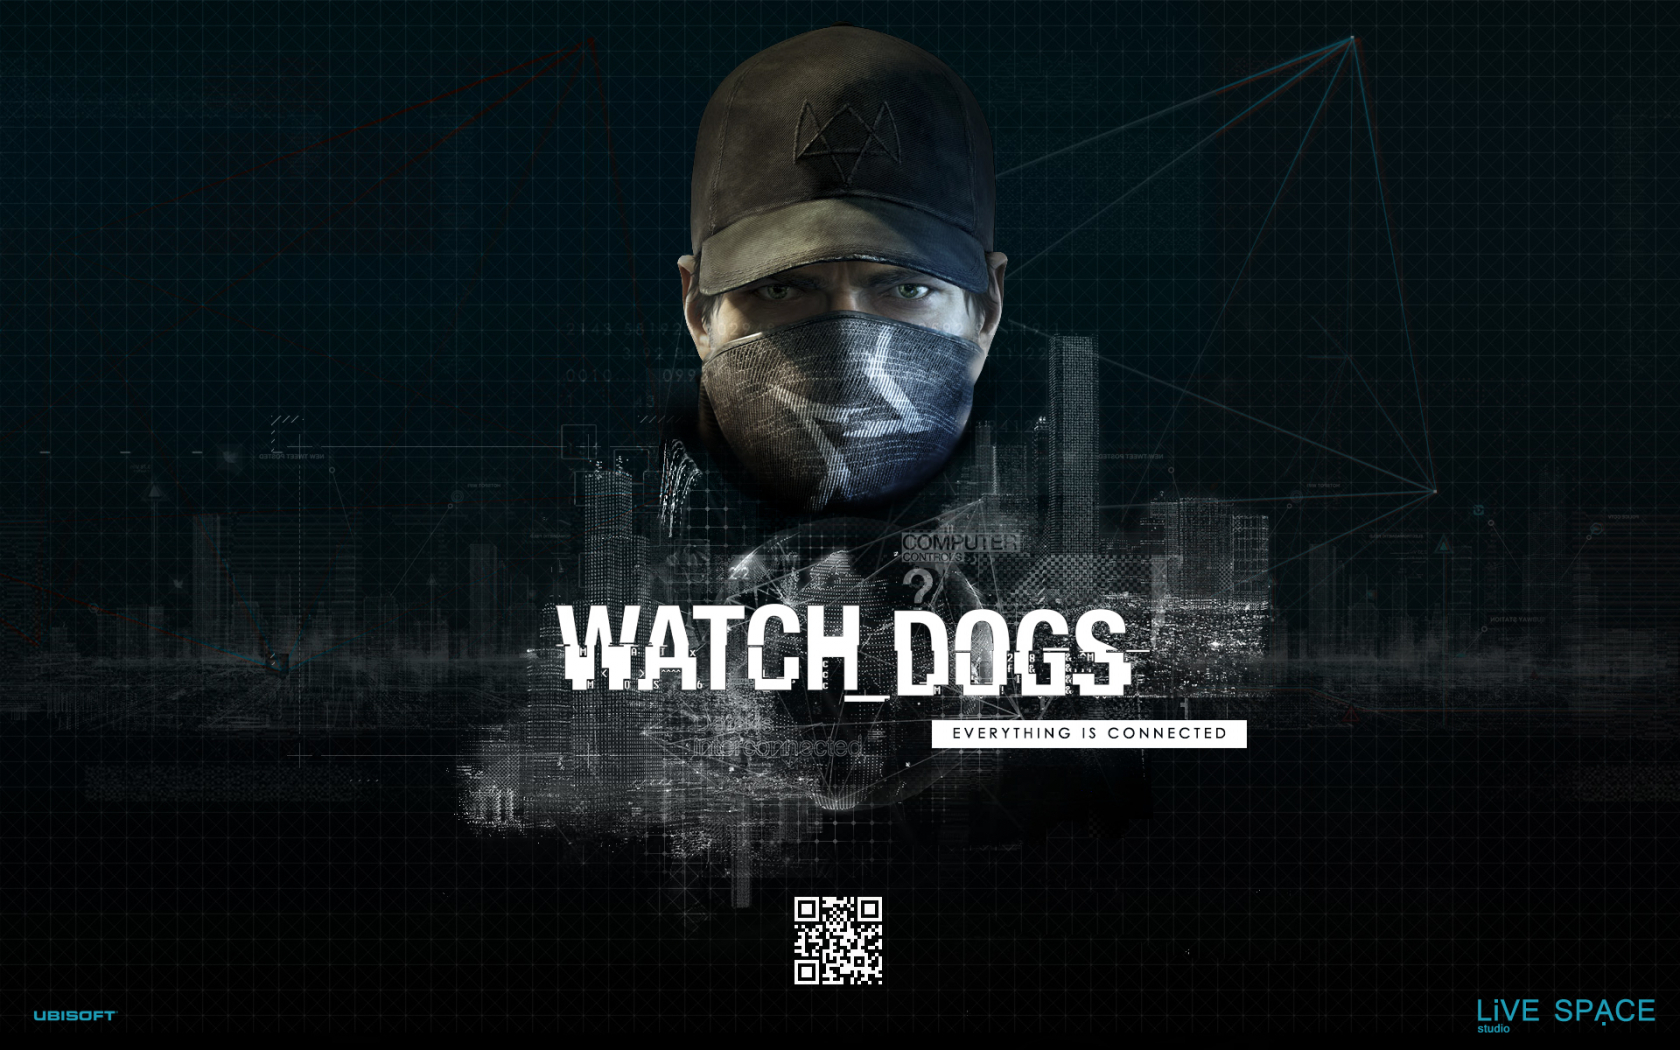 Free Download Watch Dogs Wallpapers 1920x1200 For Your Desktop